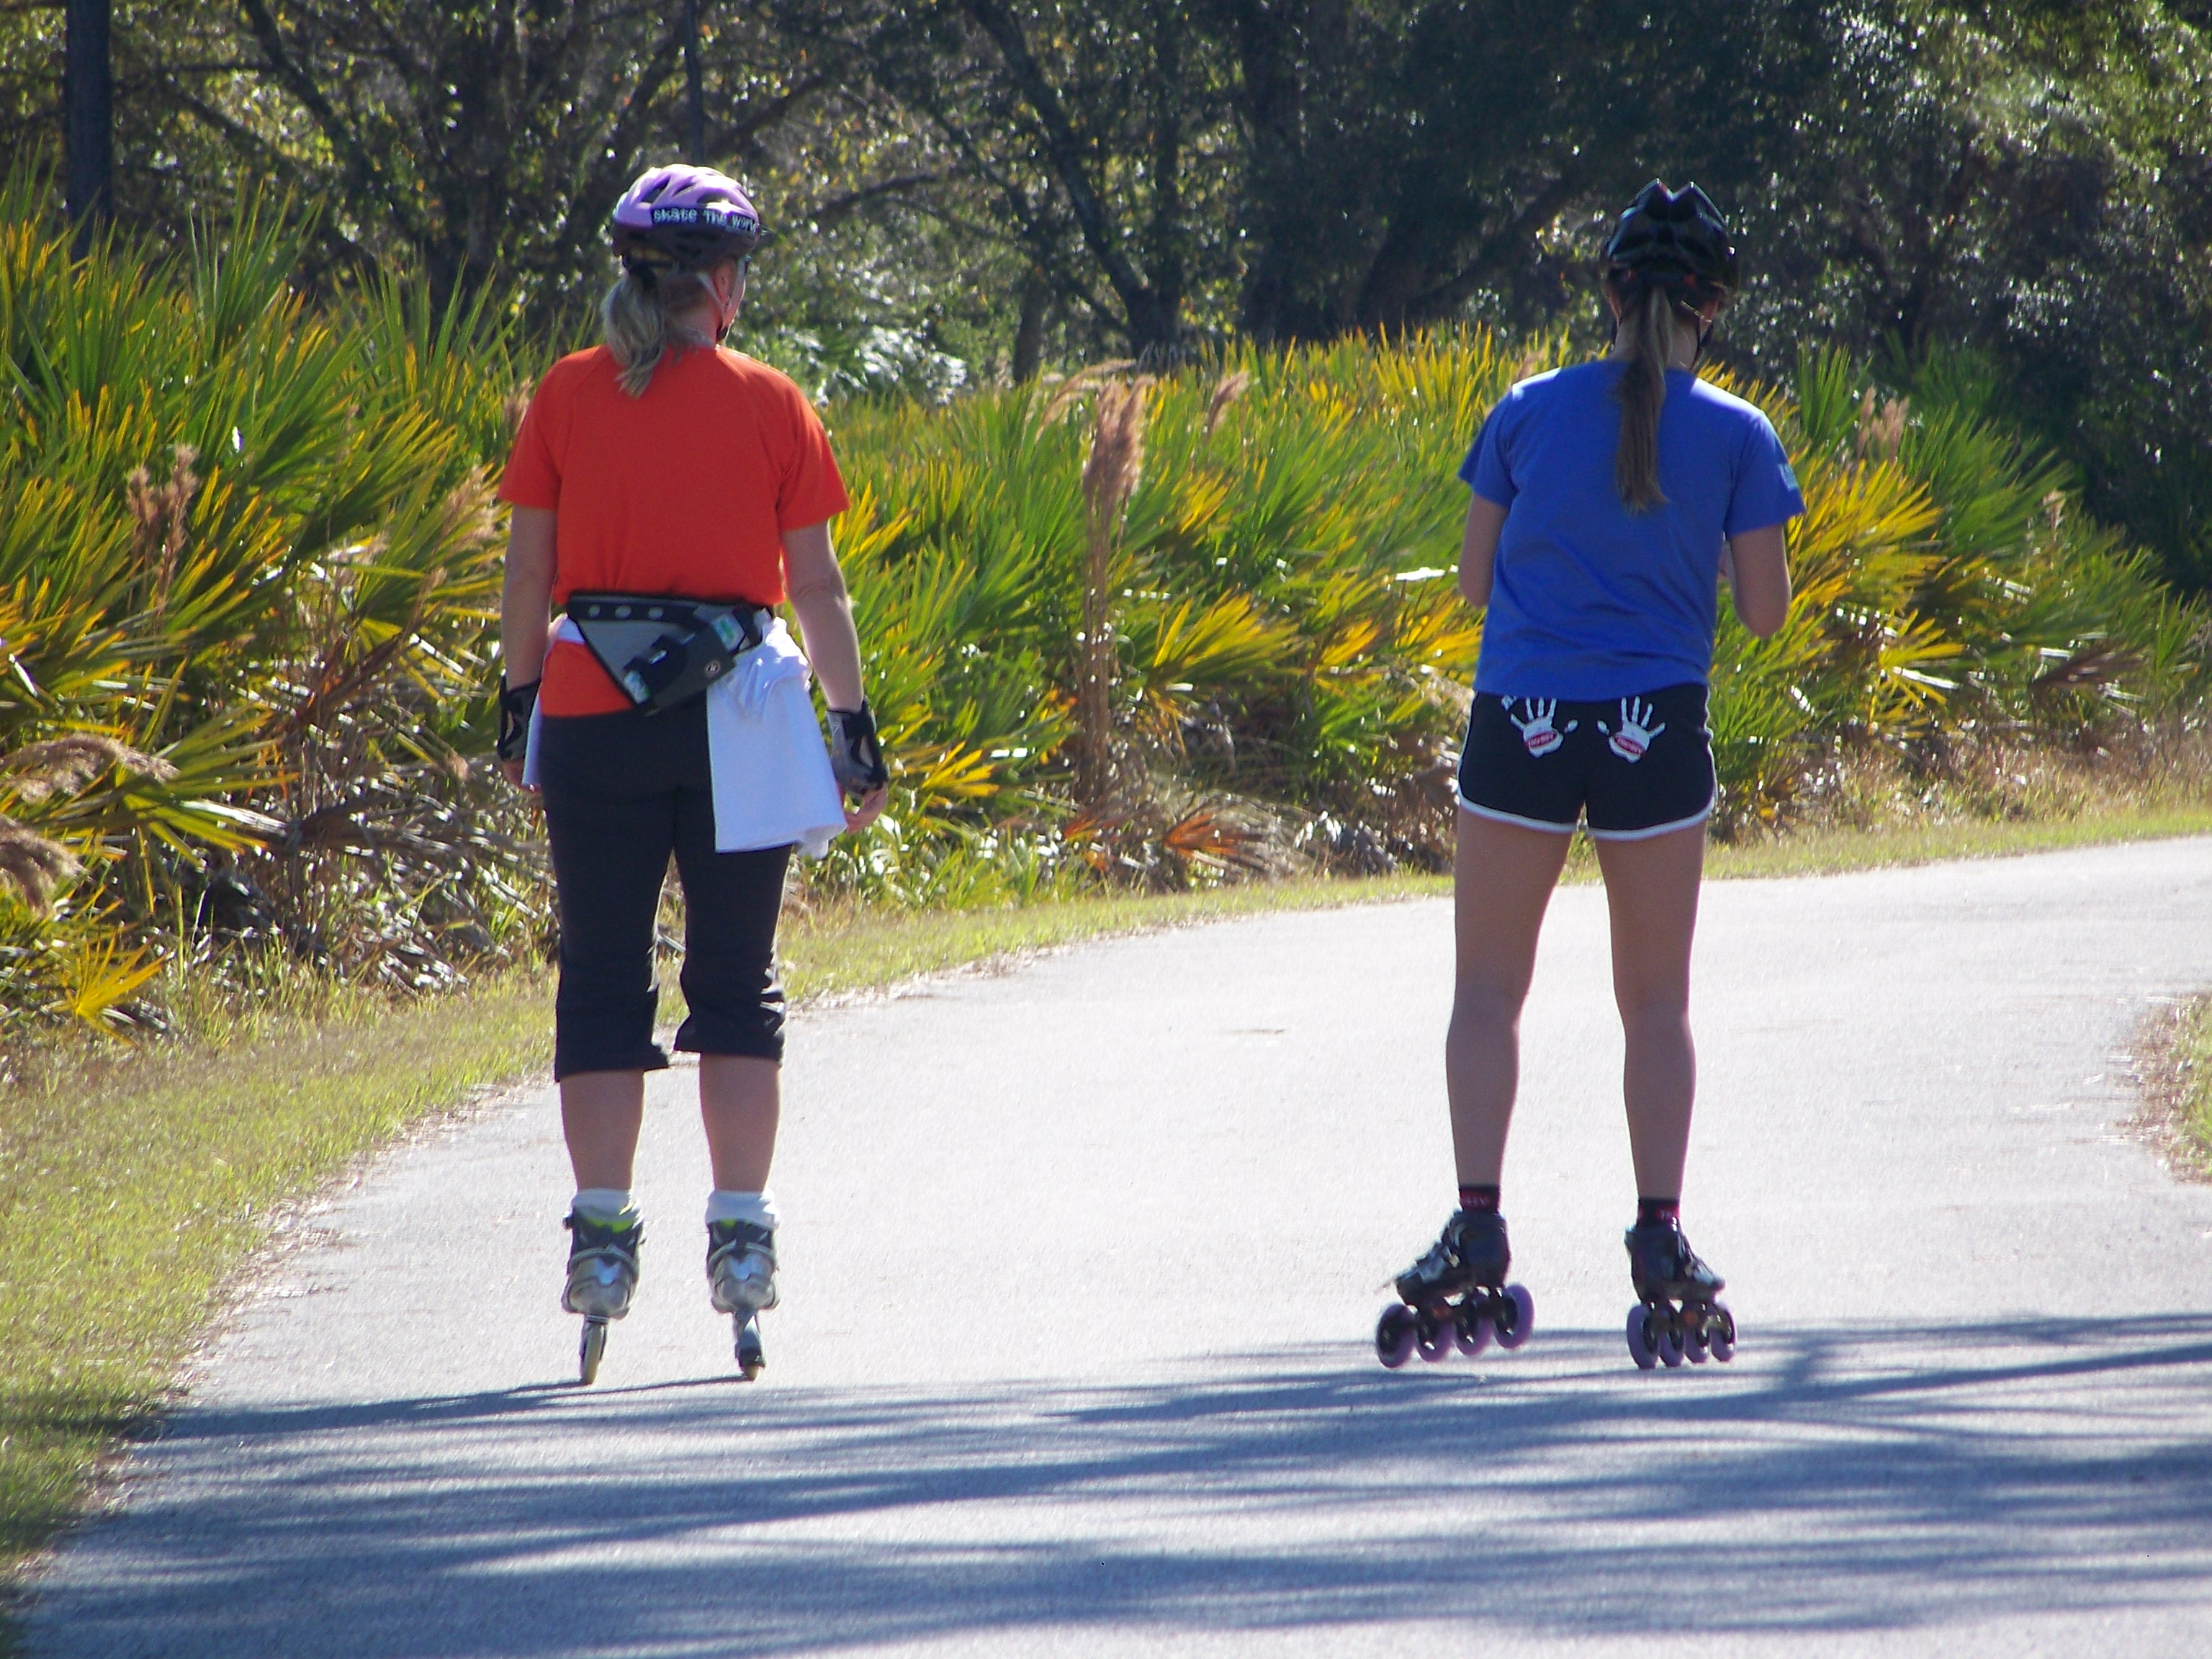 Skaters on the JB Starkey trail